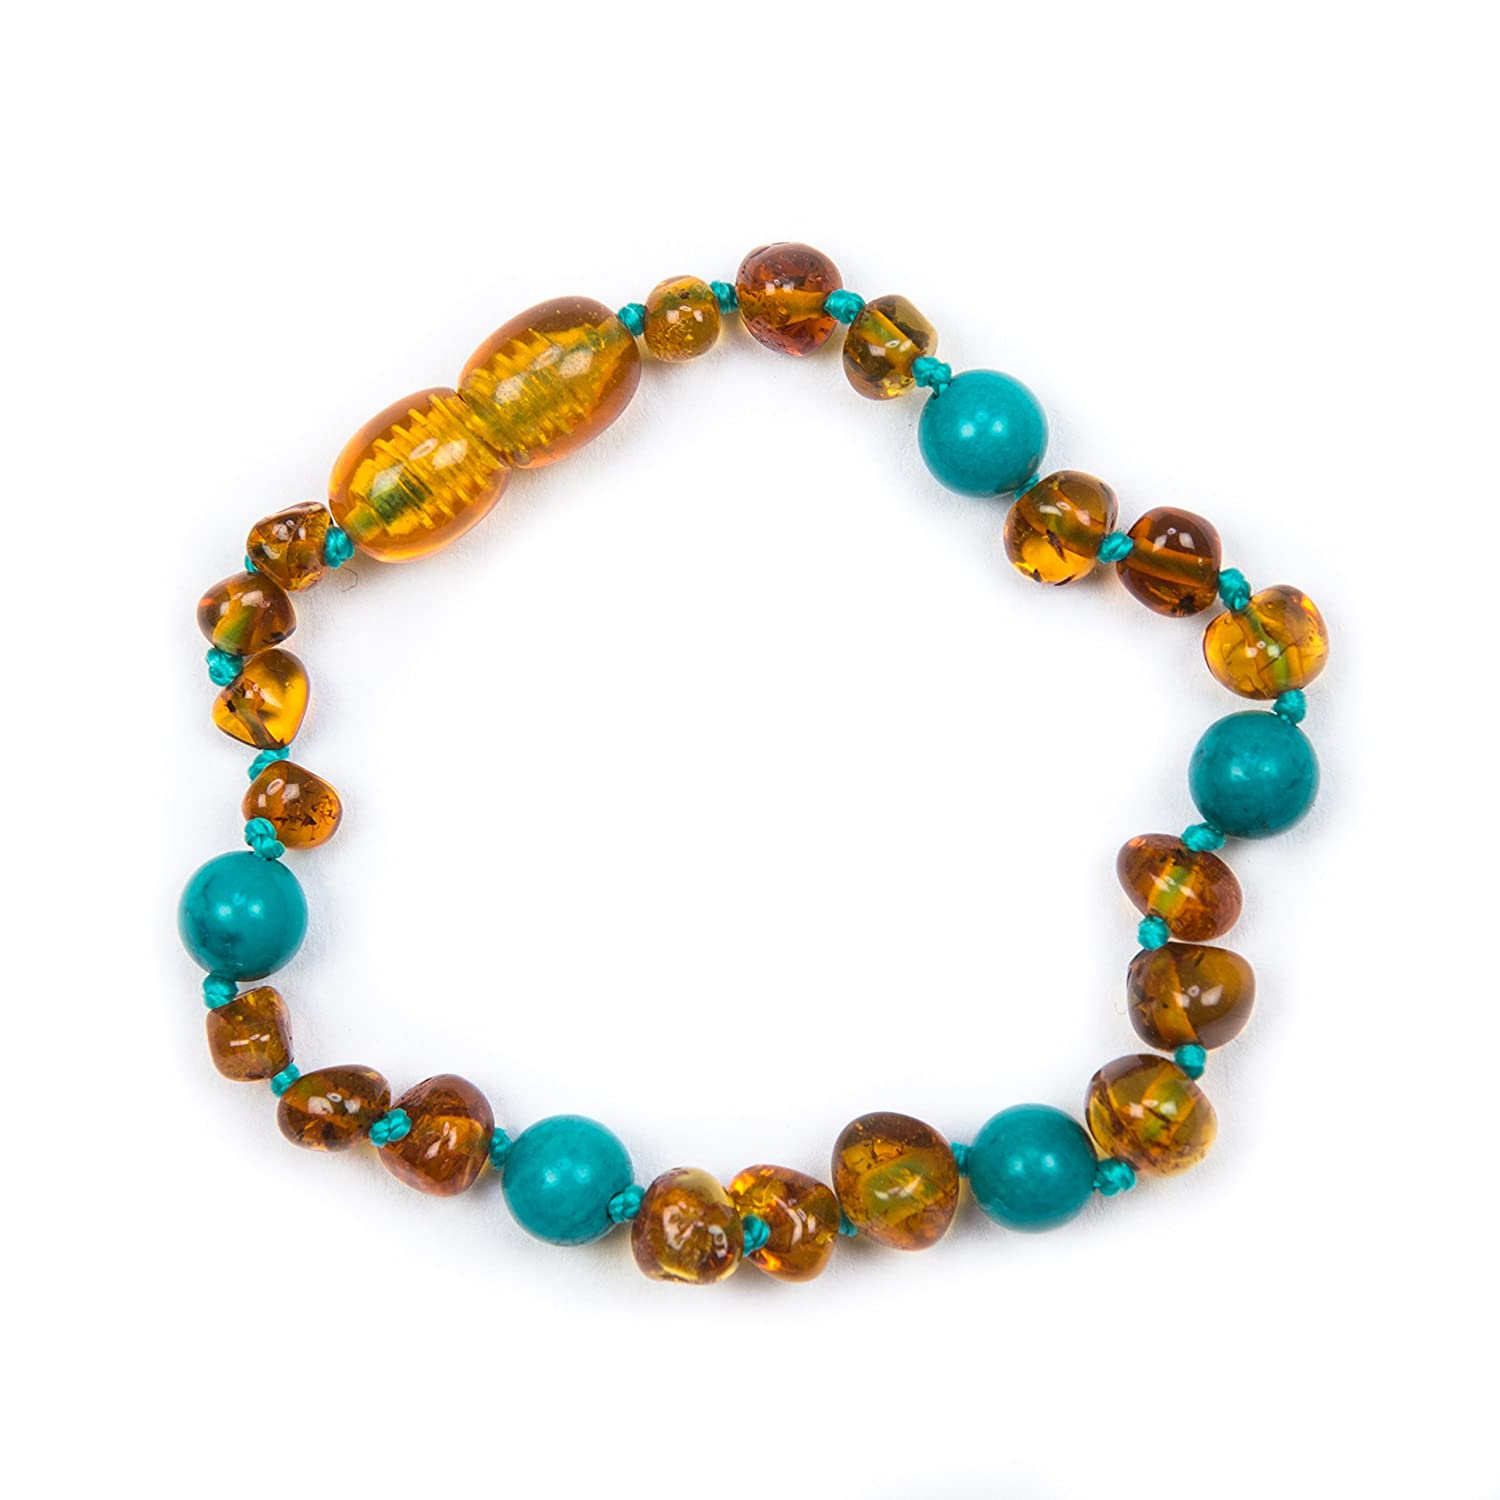 100% Genuine Baltic Amber & Semi Precious Anklet Bracelet Cognac Turquoise sizes 12cm to 19cm. Free UK Delivery. Money Back Guarantee J's Amber